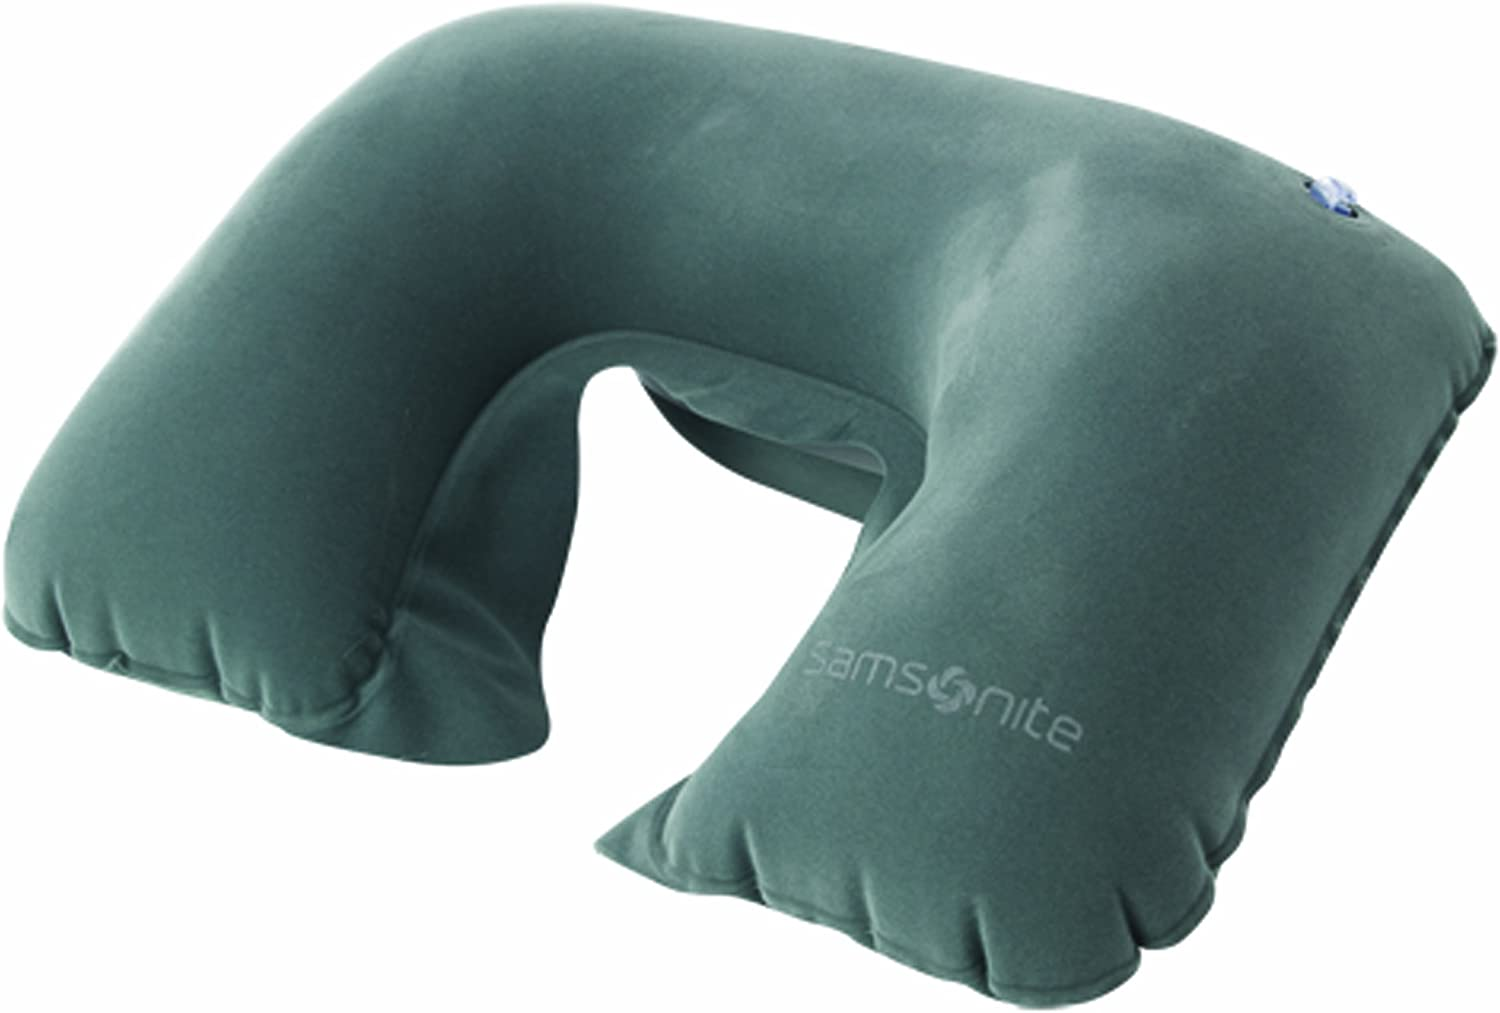 Samsonite Double Inflatable Neck Pillow